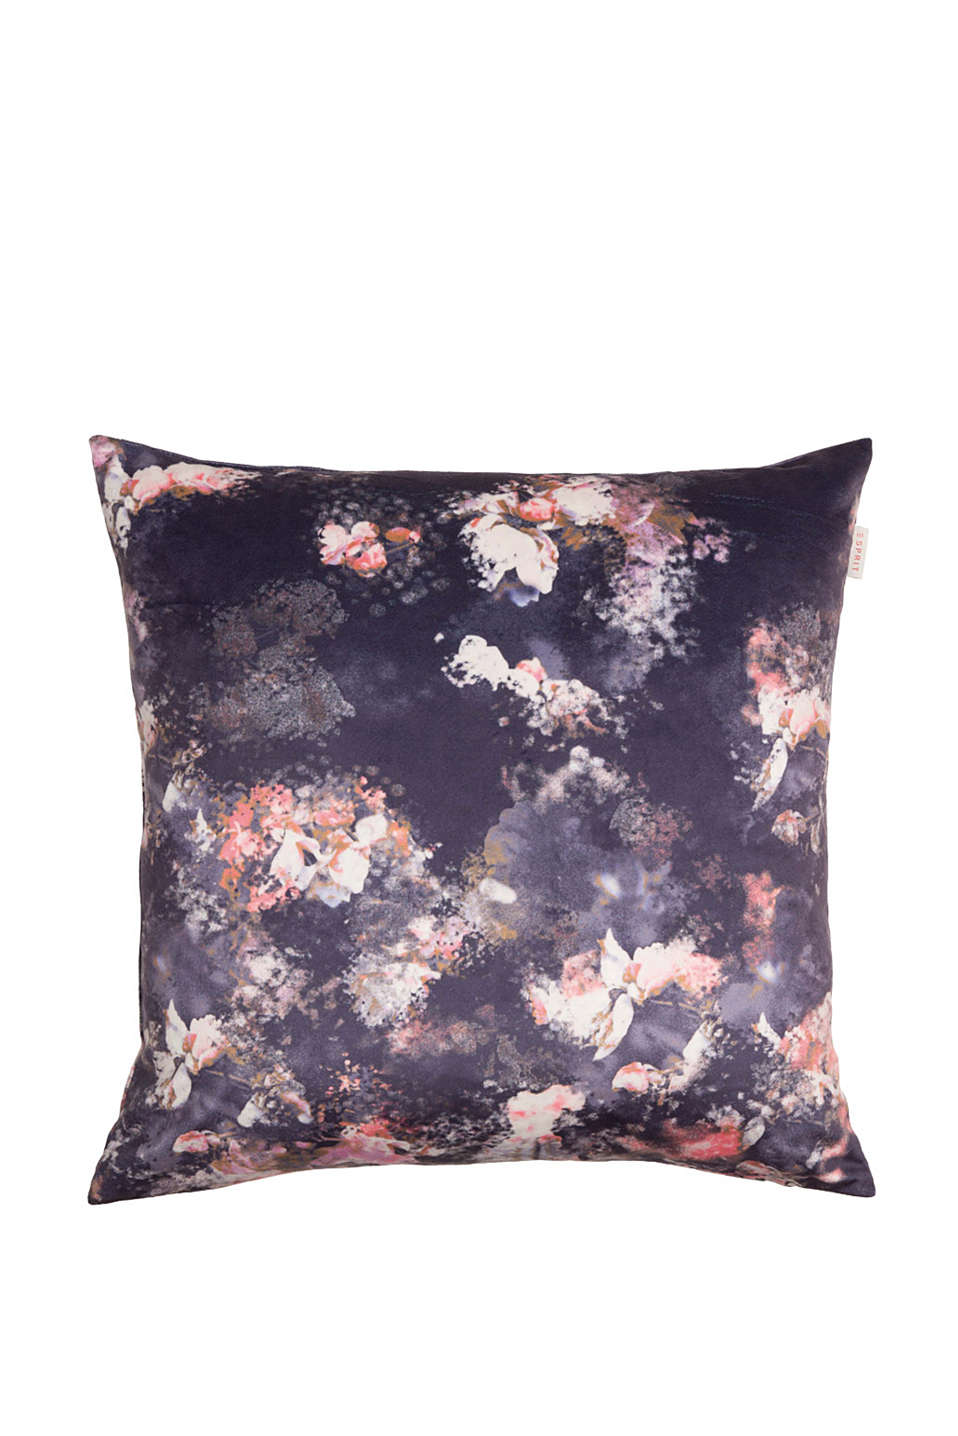 Esprit - Printed velvet cushion cover